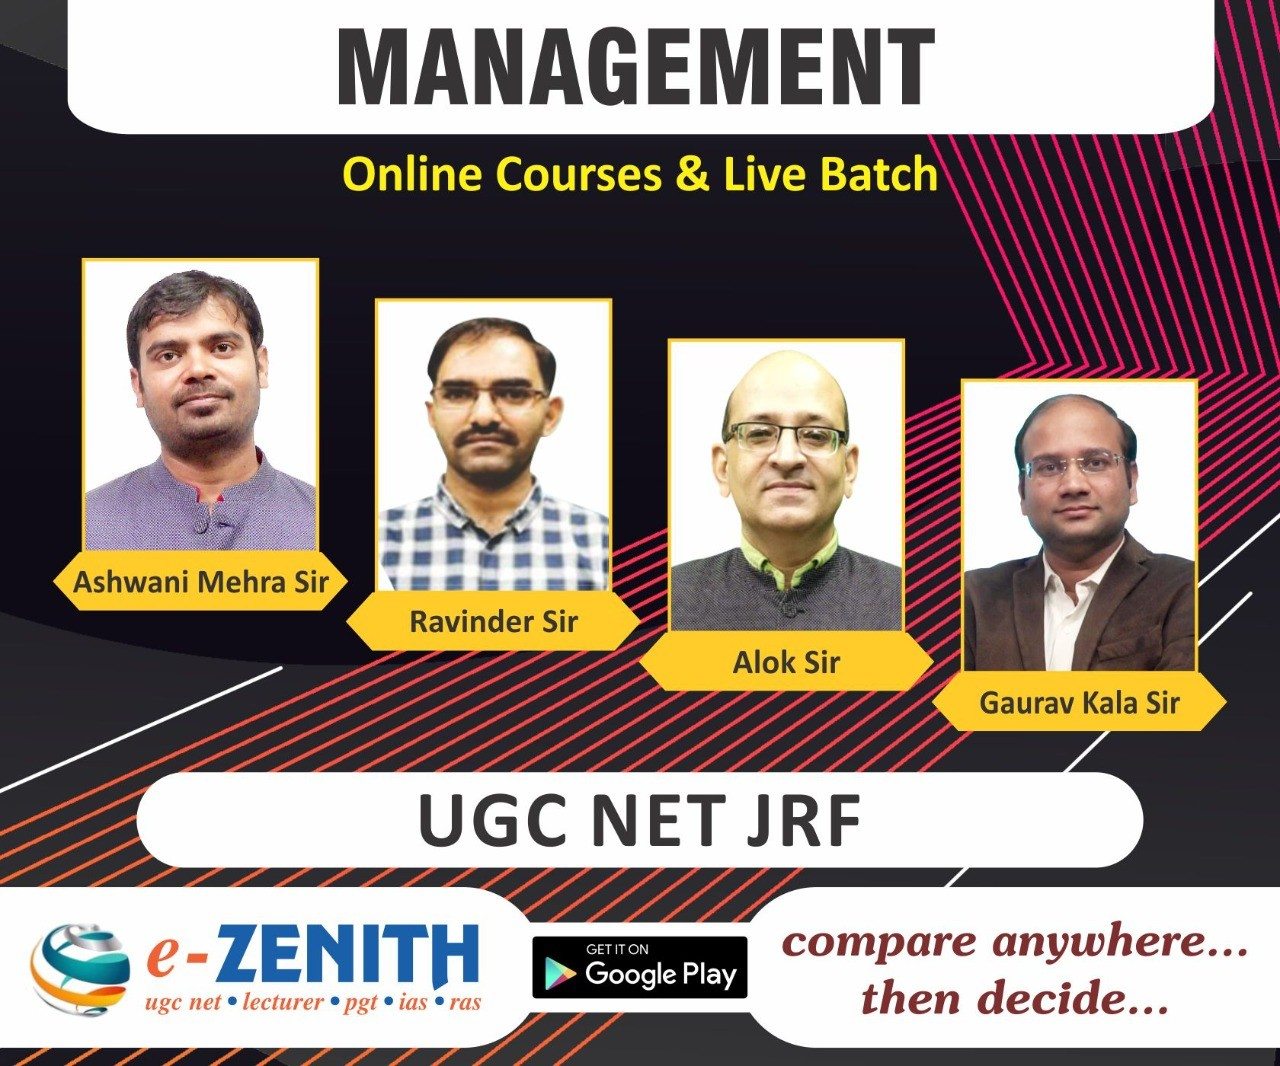 JRF UGC NET MANAGEMENT ONLINE COACHING